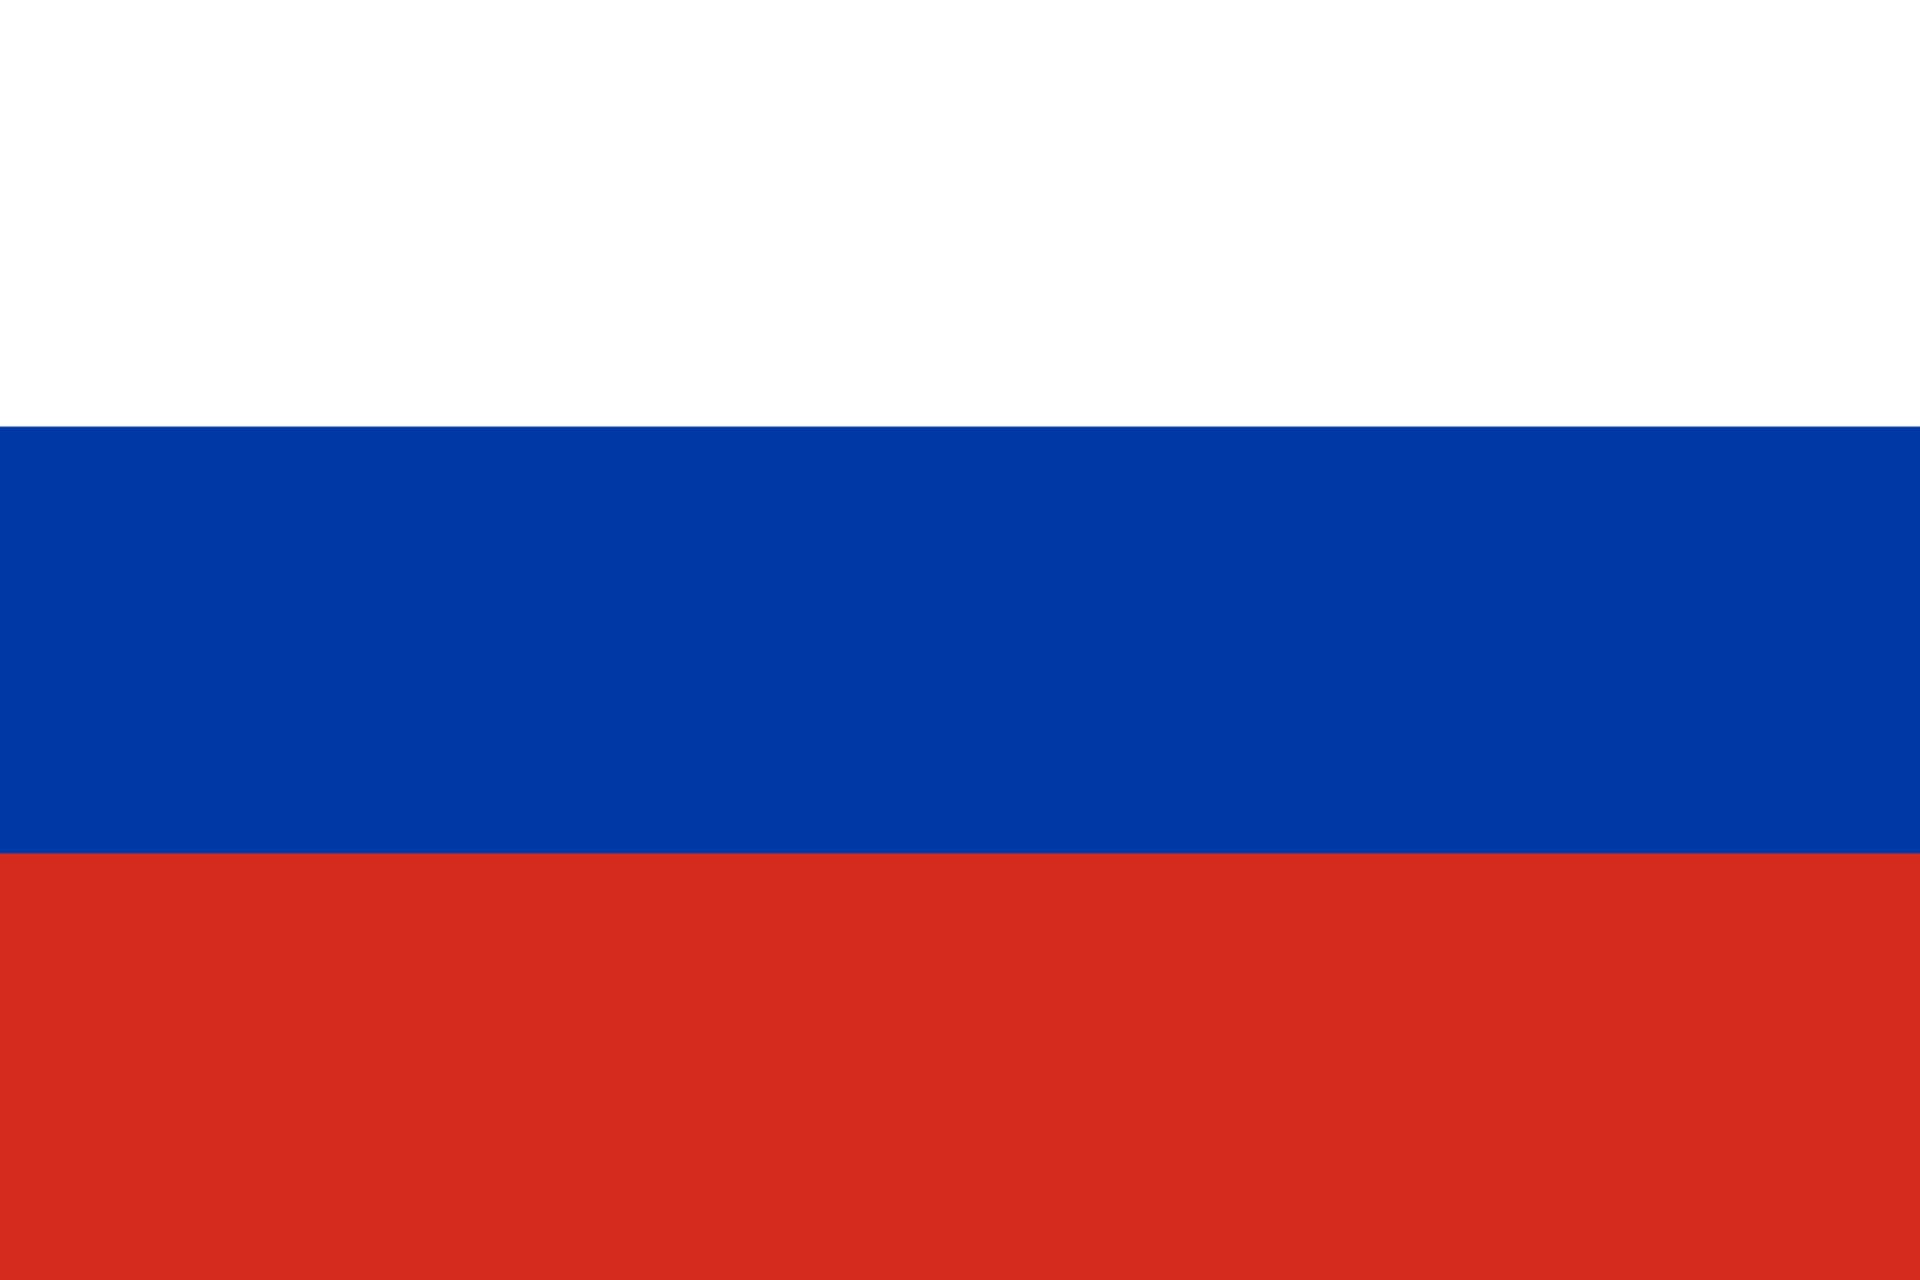 russia-flag-large